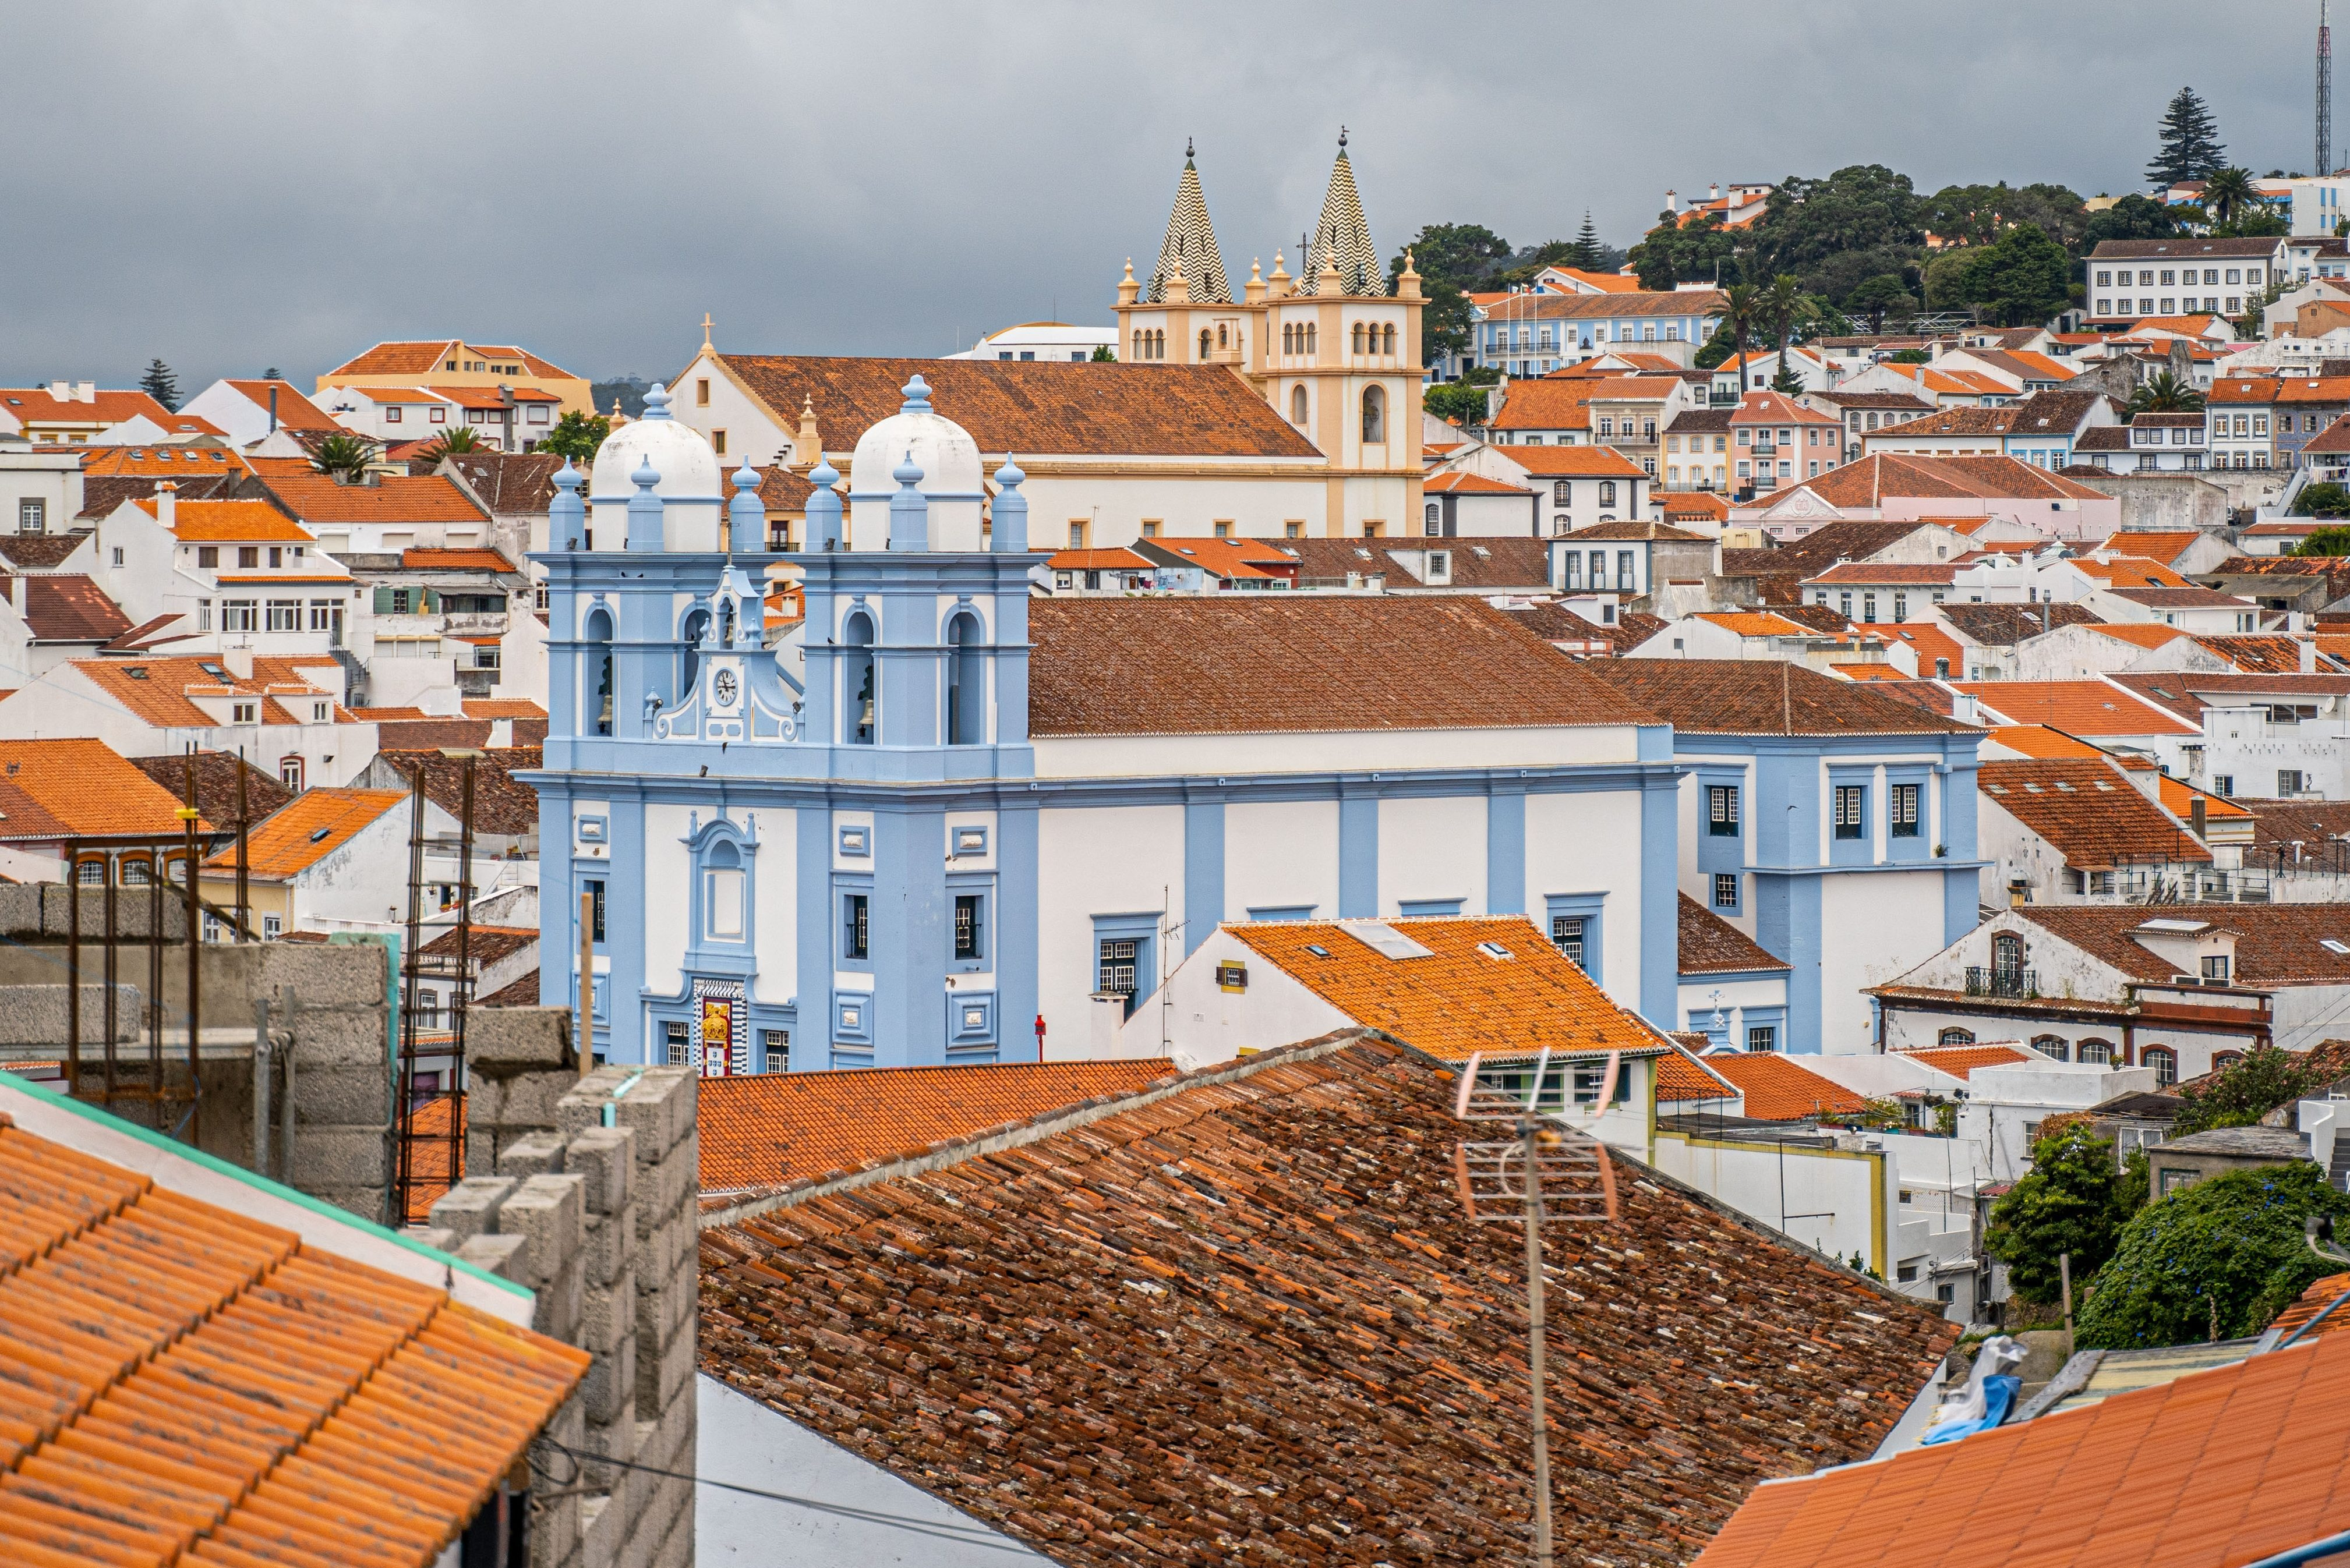 Budget Lodging in the Azores  | A Wonderful Week in the Azores (Pt. 2)